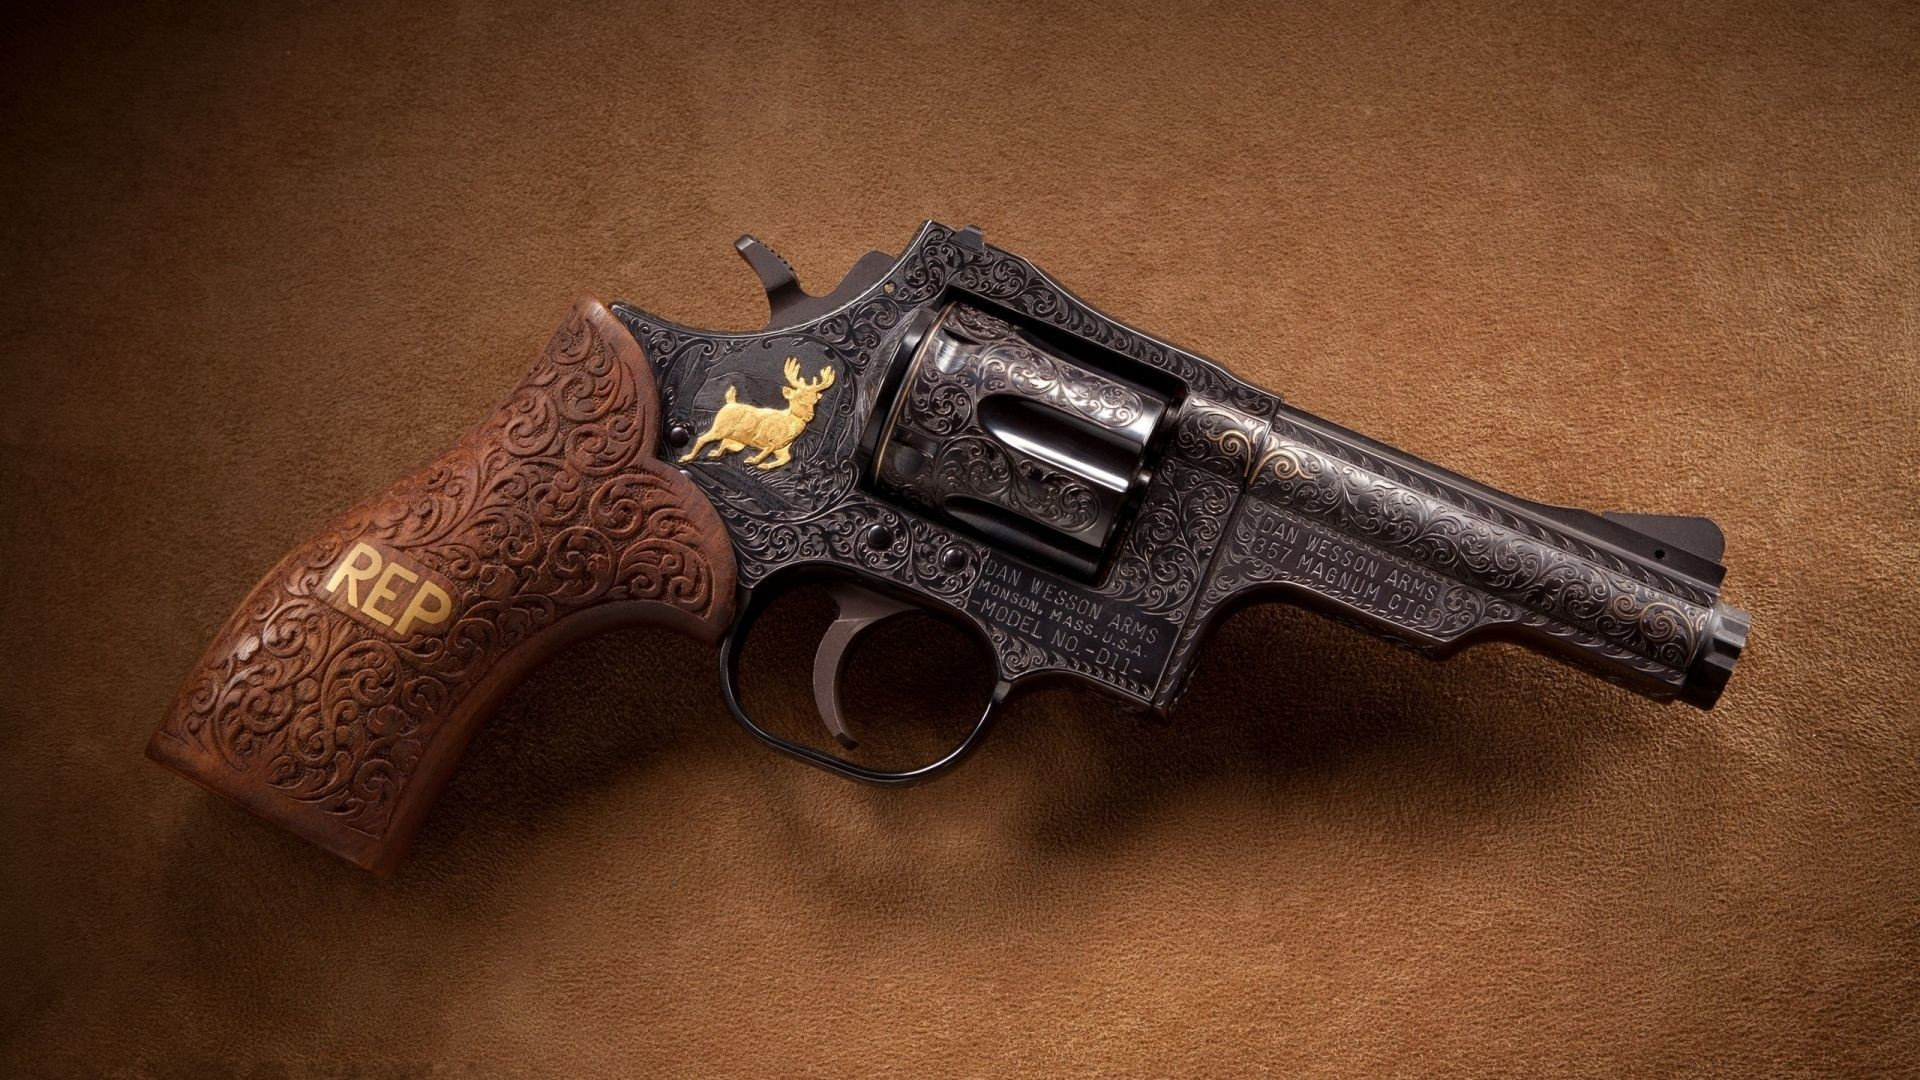 1920x1080 dan wesson 357 magnum revolver backgrounds for widescreen by Duarte Waite